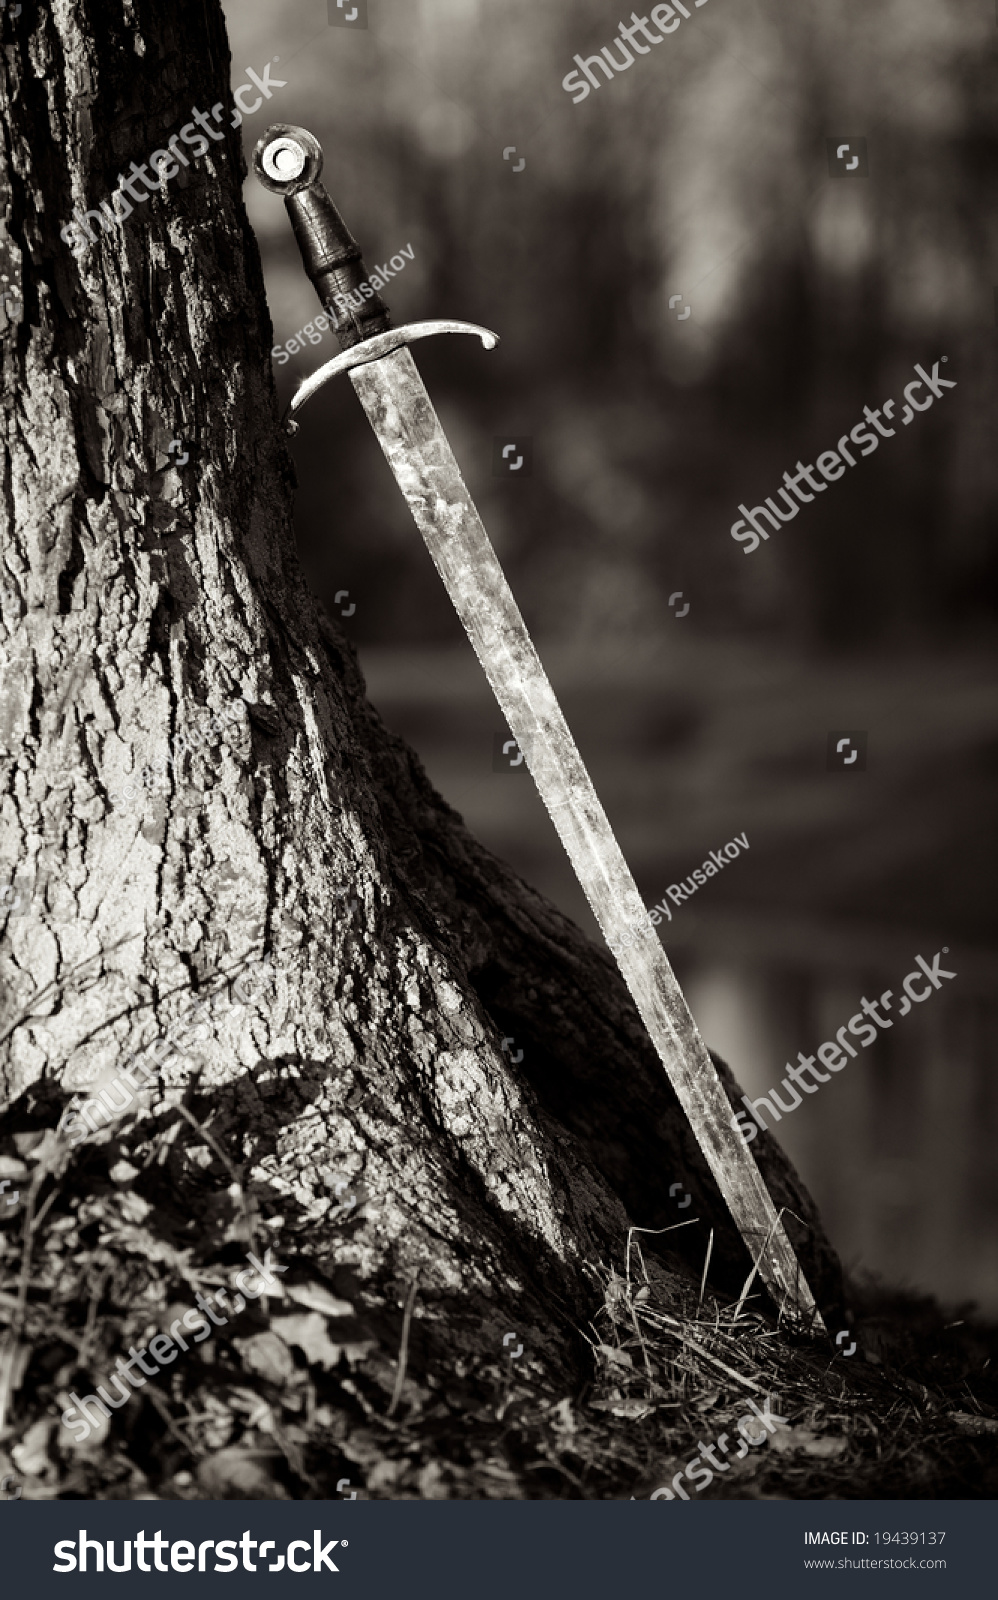 An artistic black white image on an ancient sword leaning against a tree in a